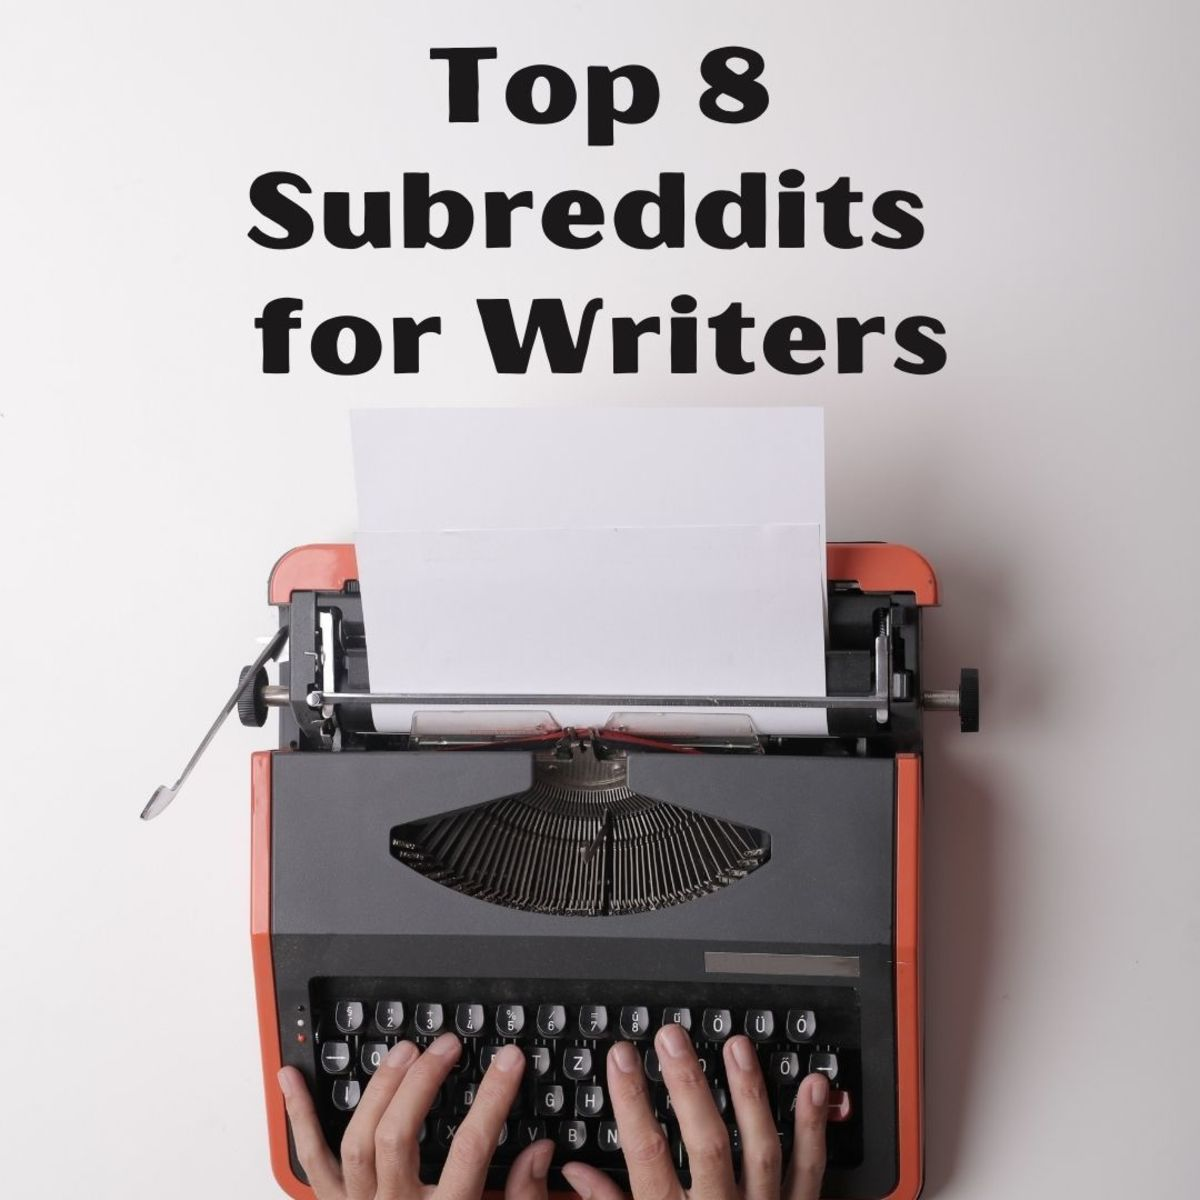 The best subreddits that will help you become a better and more productive writer